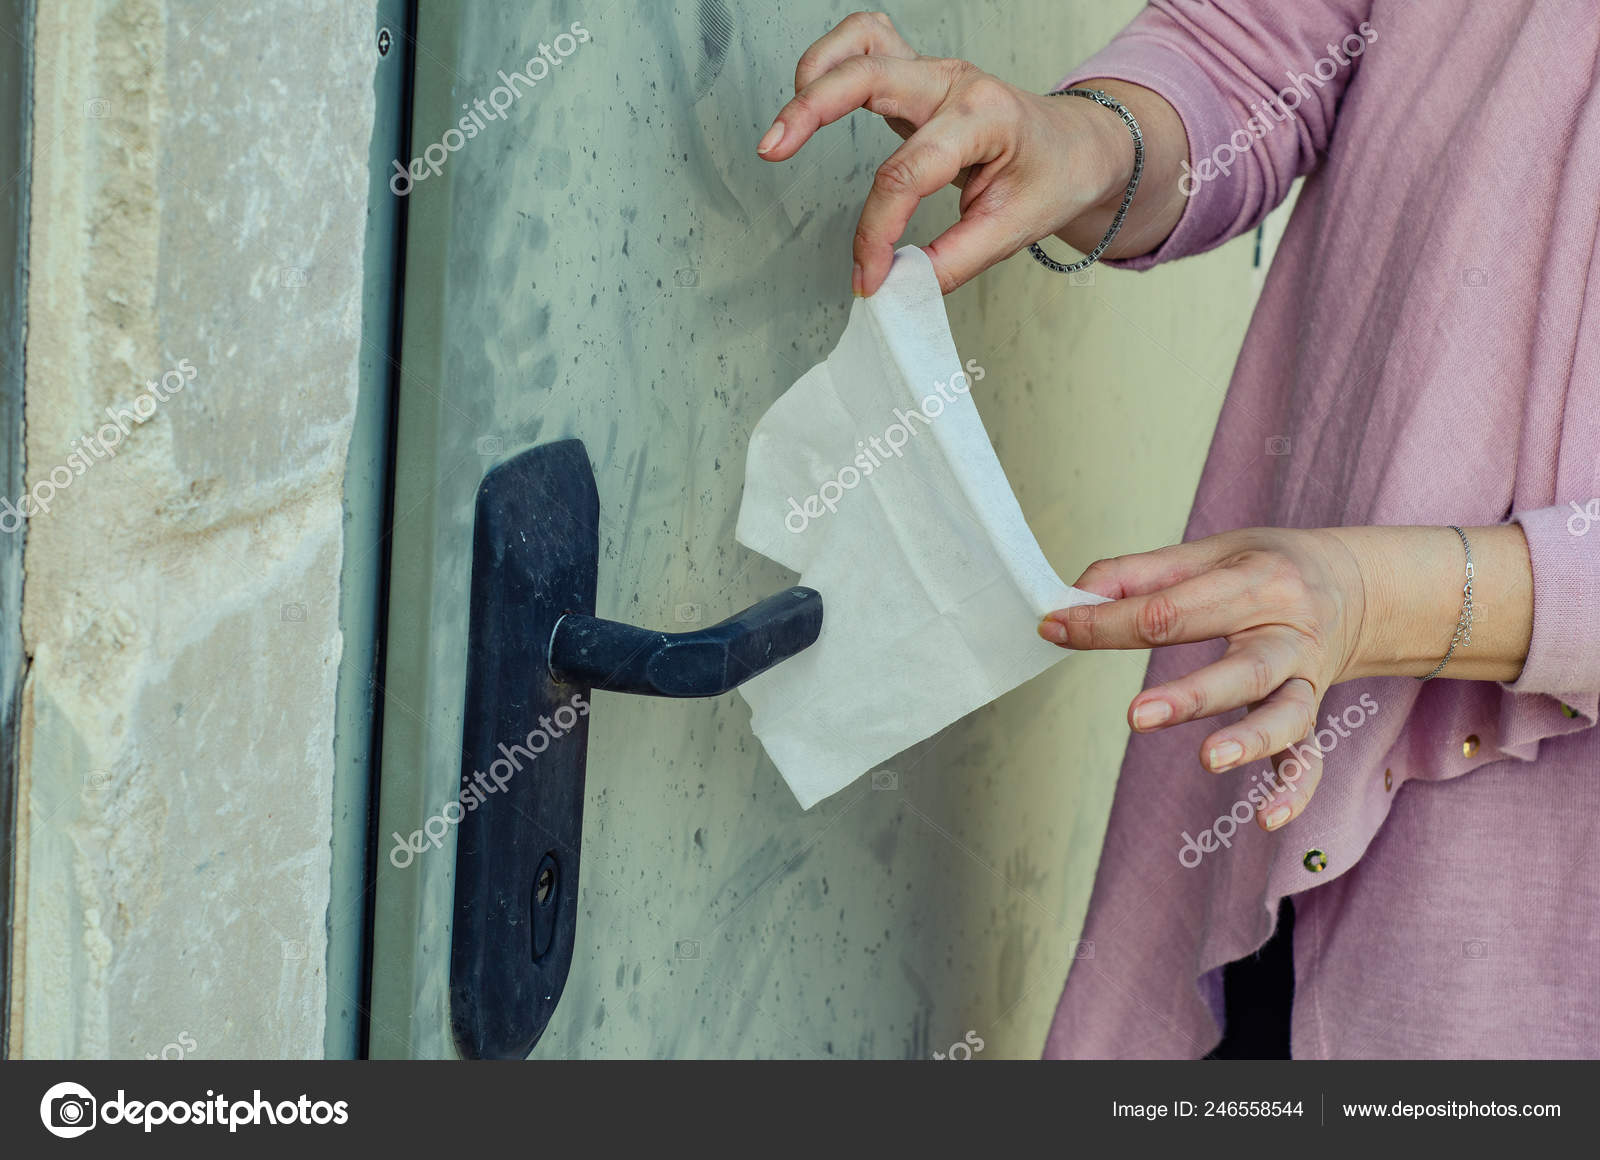 A woman with germophobia prepares a napkin to cover the handle of the entrance door.